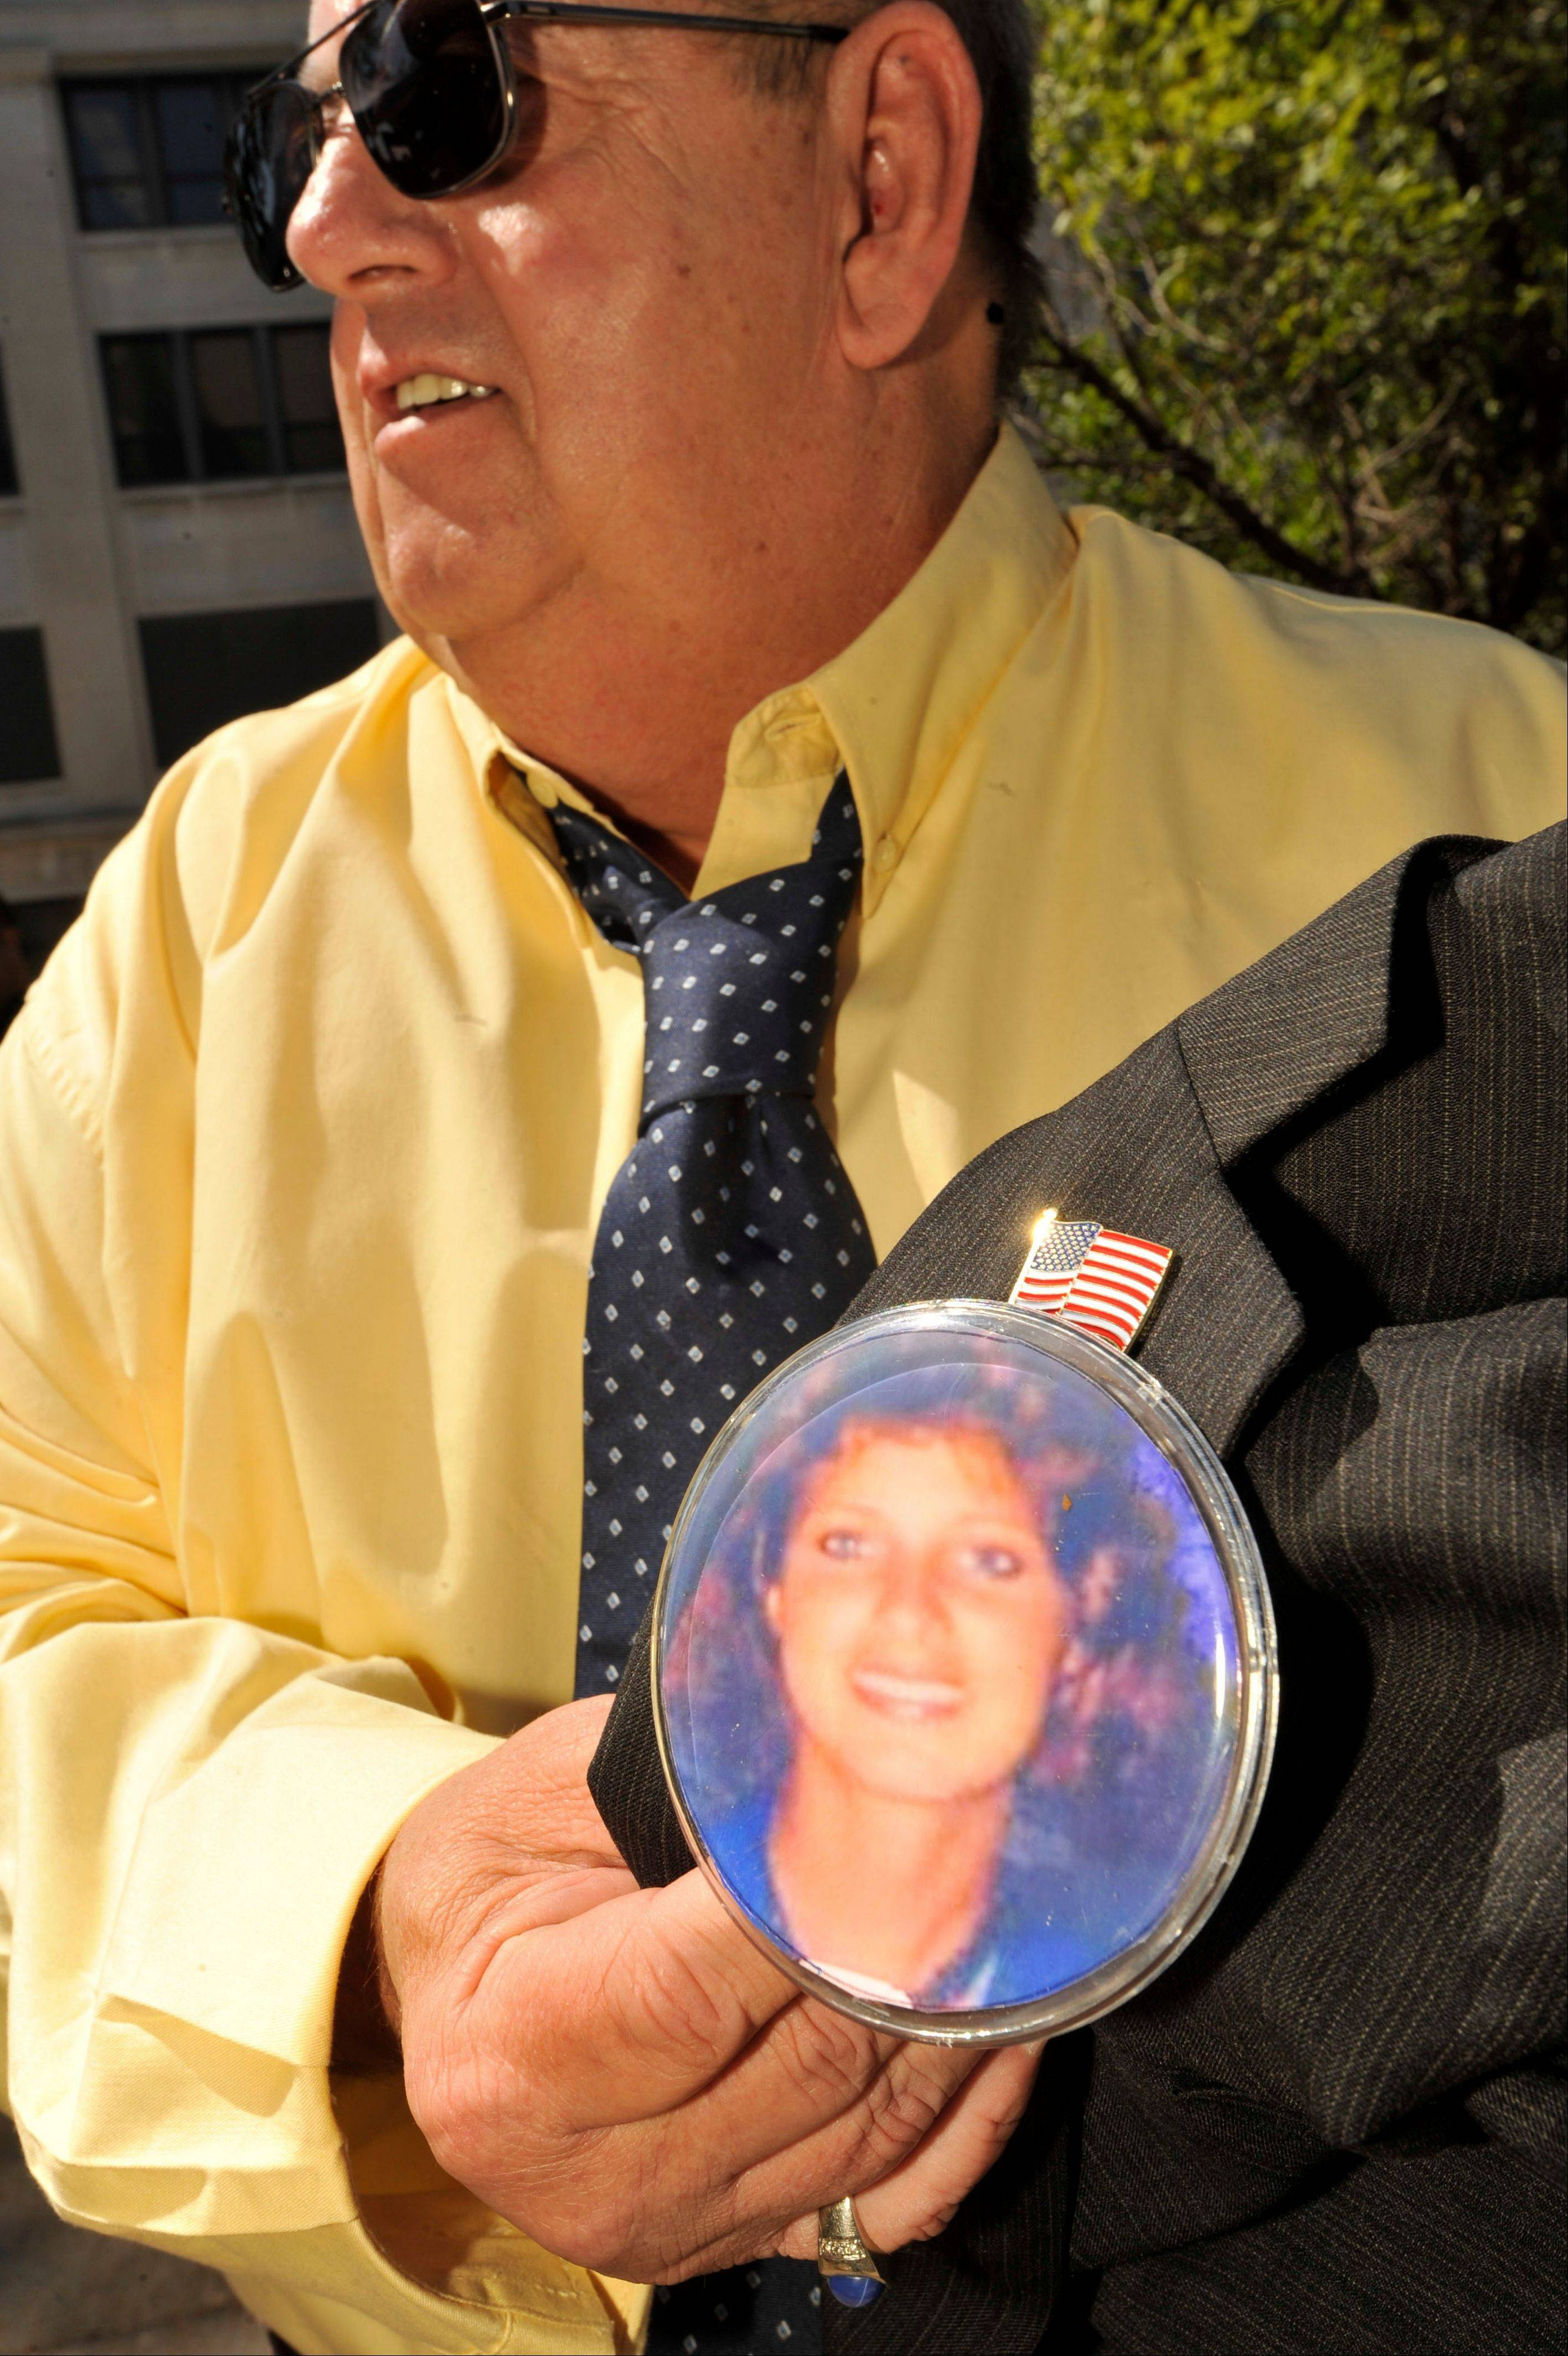 Mitch Doman, brother-in-law of Kathleen Savio, holds a photo button of the late Savio on Thursday outside the Will County Courthouse during the second day of jury deliberations in former Bolingbrook police officer Drew Peterson's murder trial in Joliet. Peterson was found guilty.